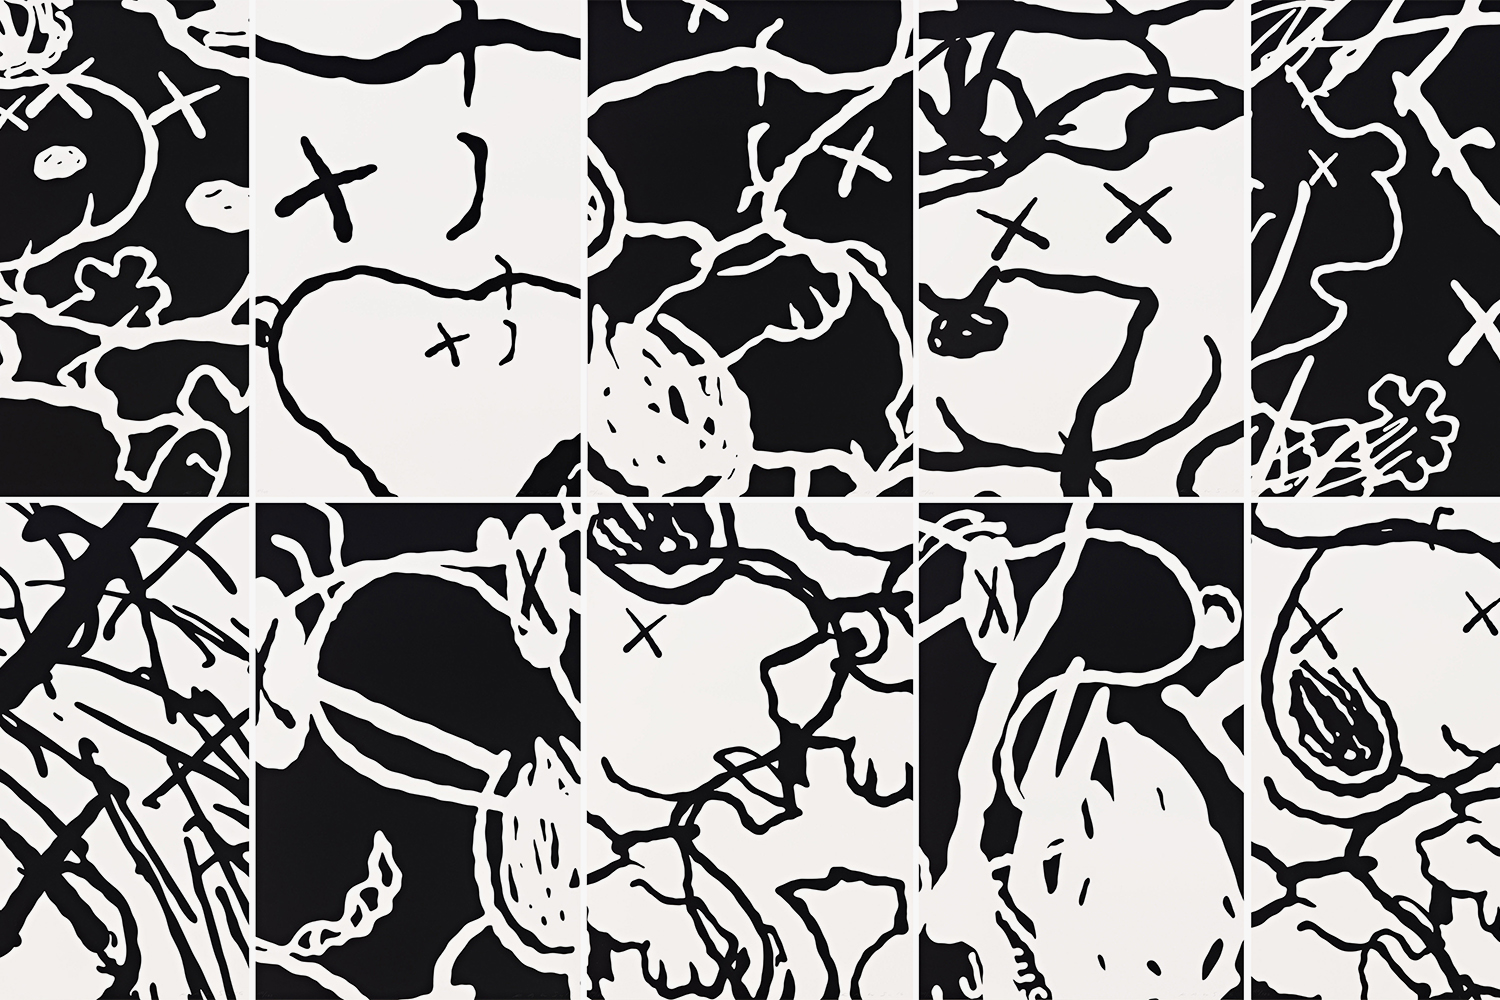 KAWS Teams up With Pace Prints to Drop Limited Edition 'Man's Best Friend' Set